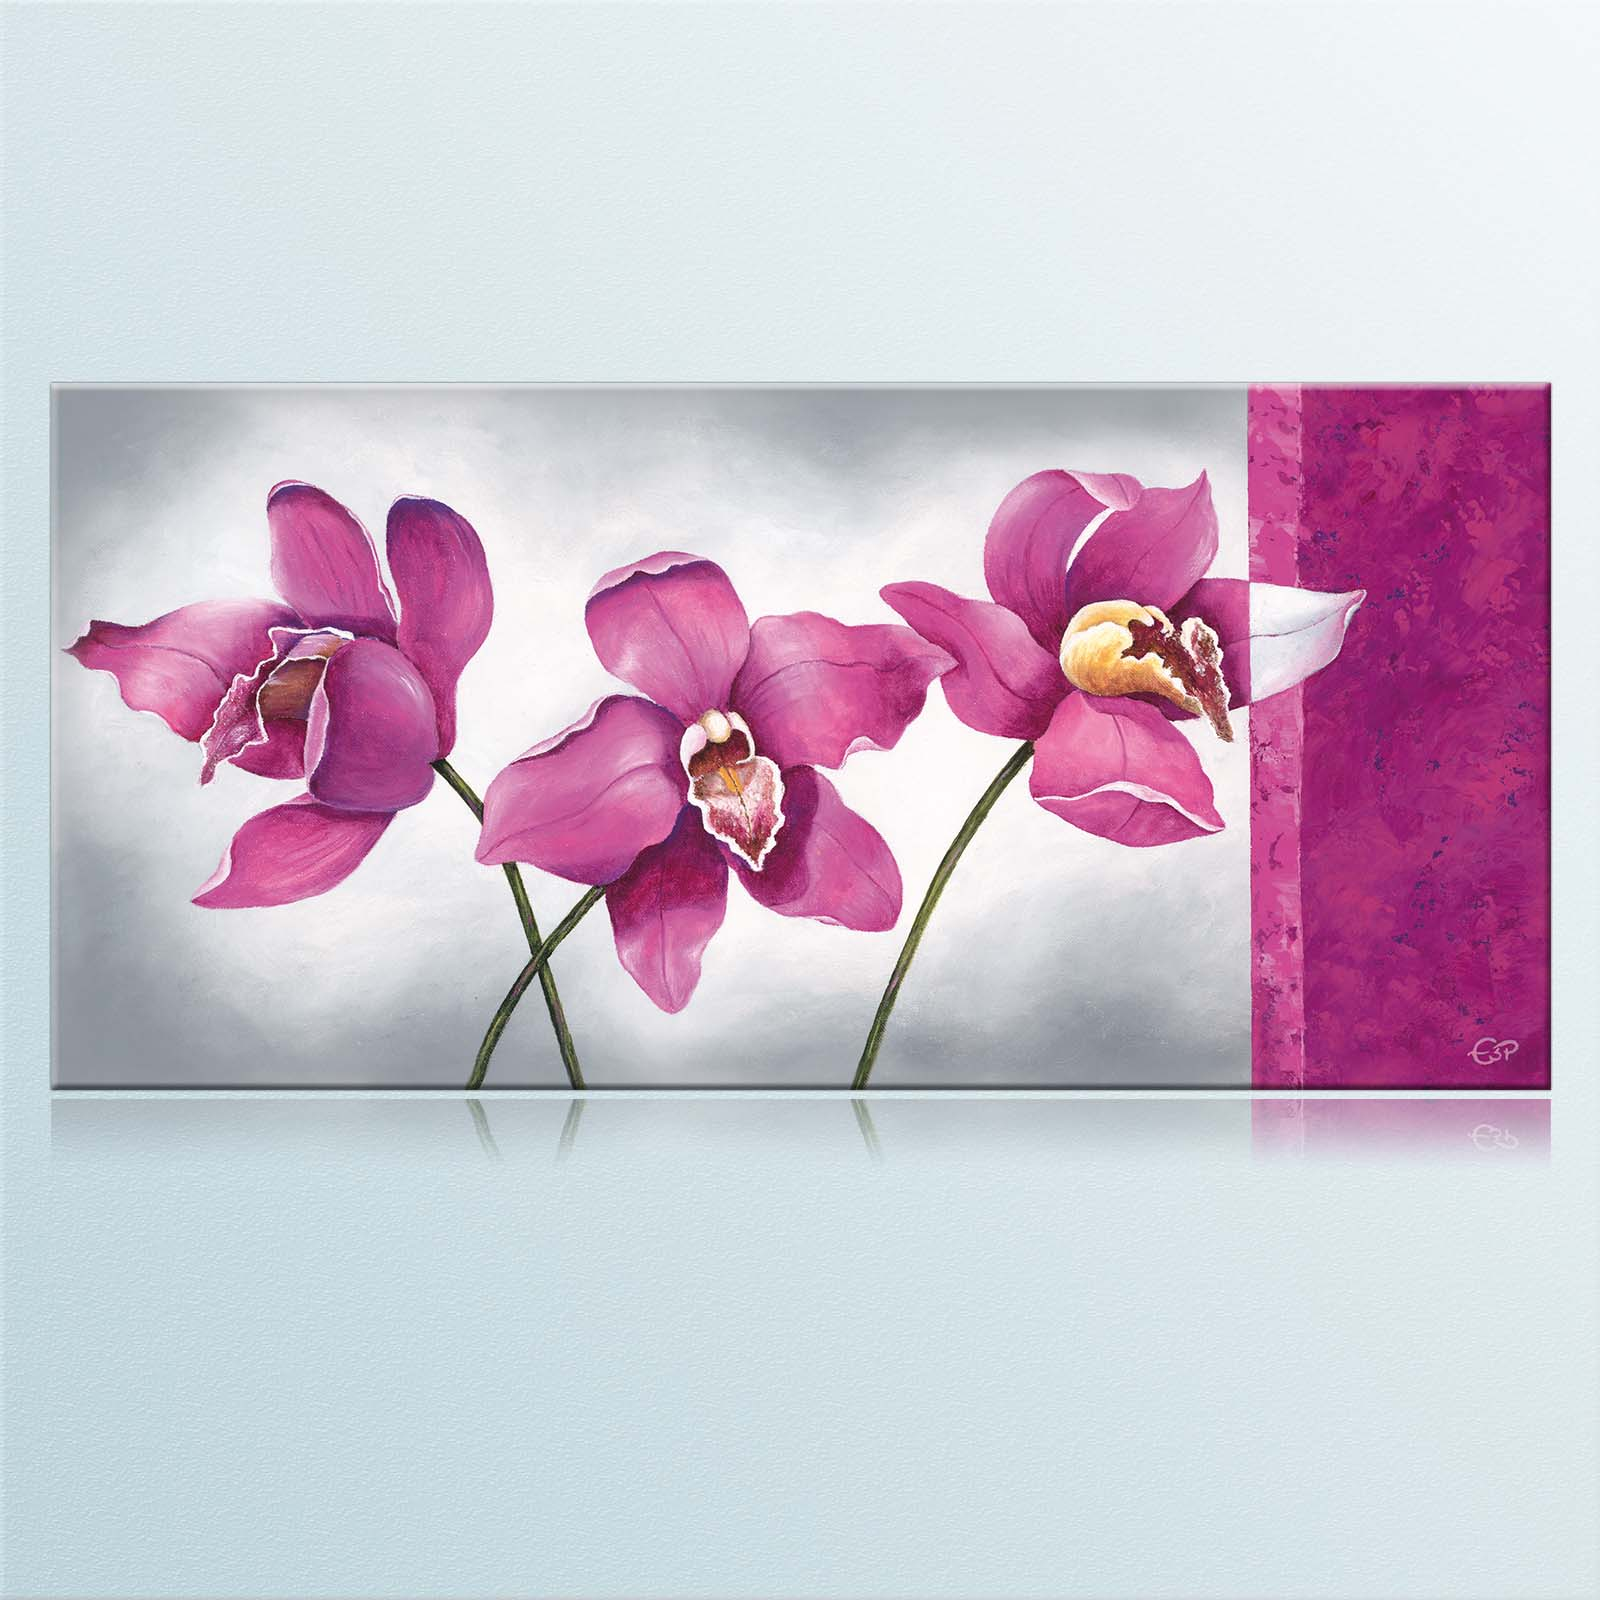 33x70cm orchidee lila grau keilrahmenbild canvas leinwand bild ebay. Black Bedroom Furniture Sets. Home Design Ideas